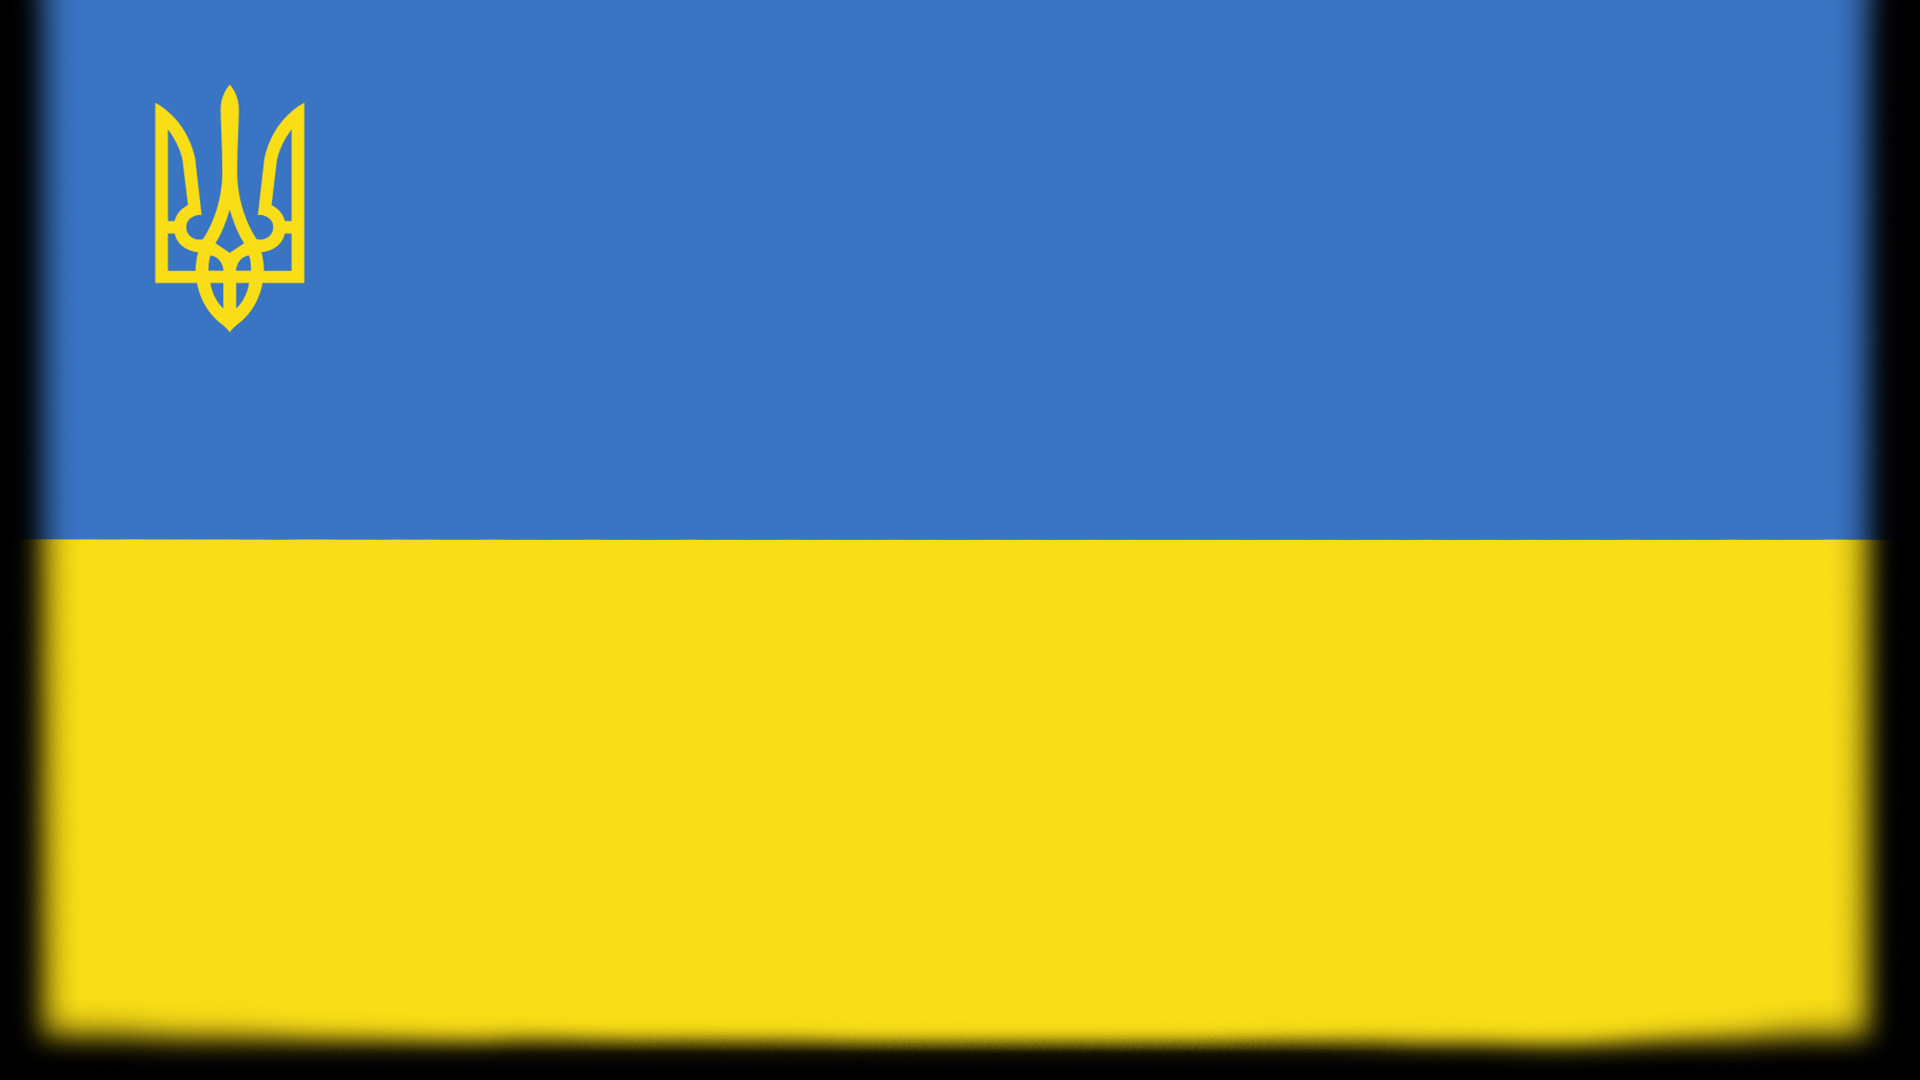 The Ukraine flag.